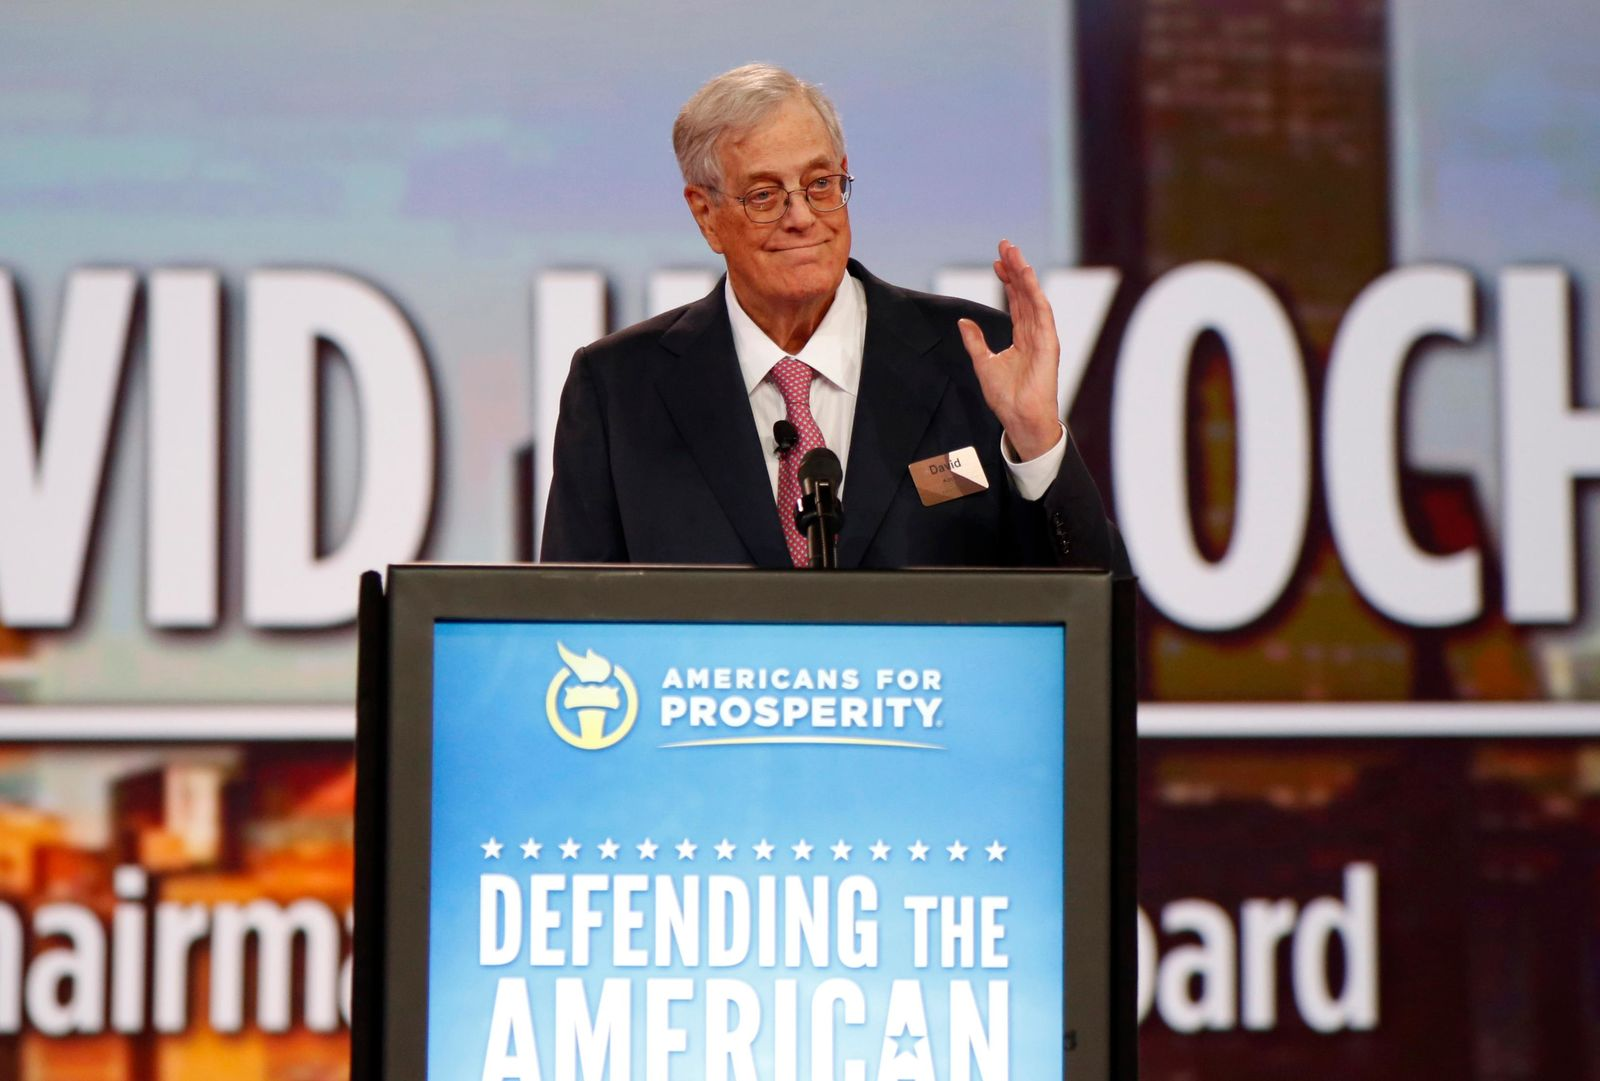 FILE - In this Aug. 1, 2015 file photo, Chairman of the board of Americans for Prosperity David Koch speaks at the Defending the American Dream summit hosted by Americans for Prosperity at the Greater Columbus Convention Center in Columbus, Ohio. (AP Photo/Paul Vernon, File)